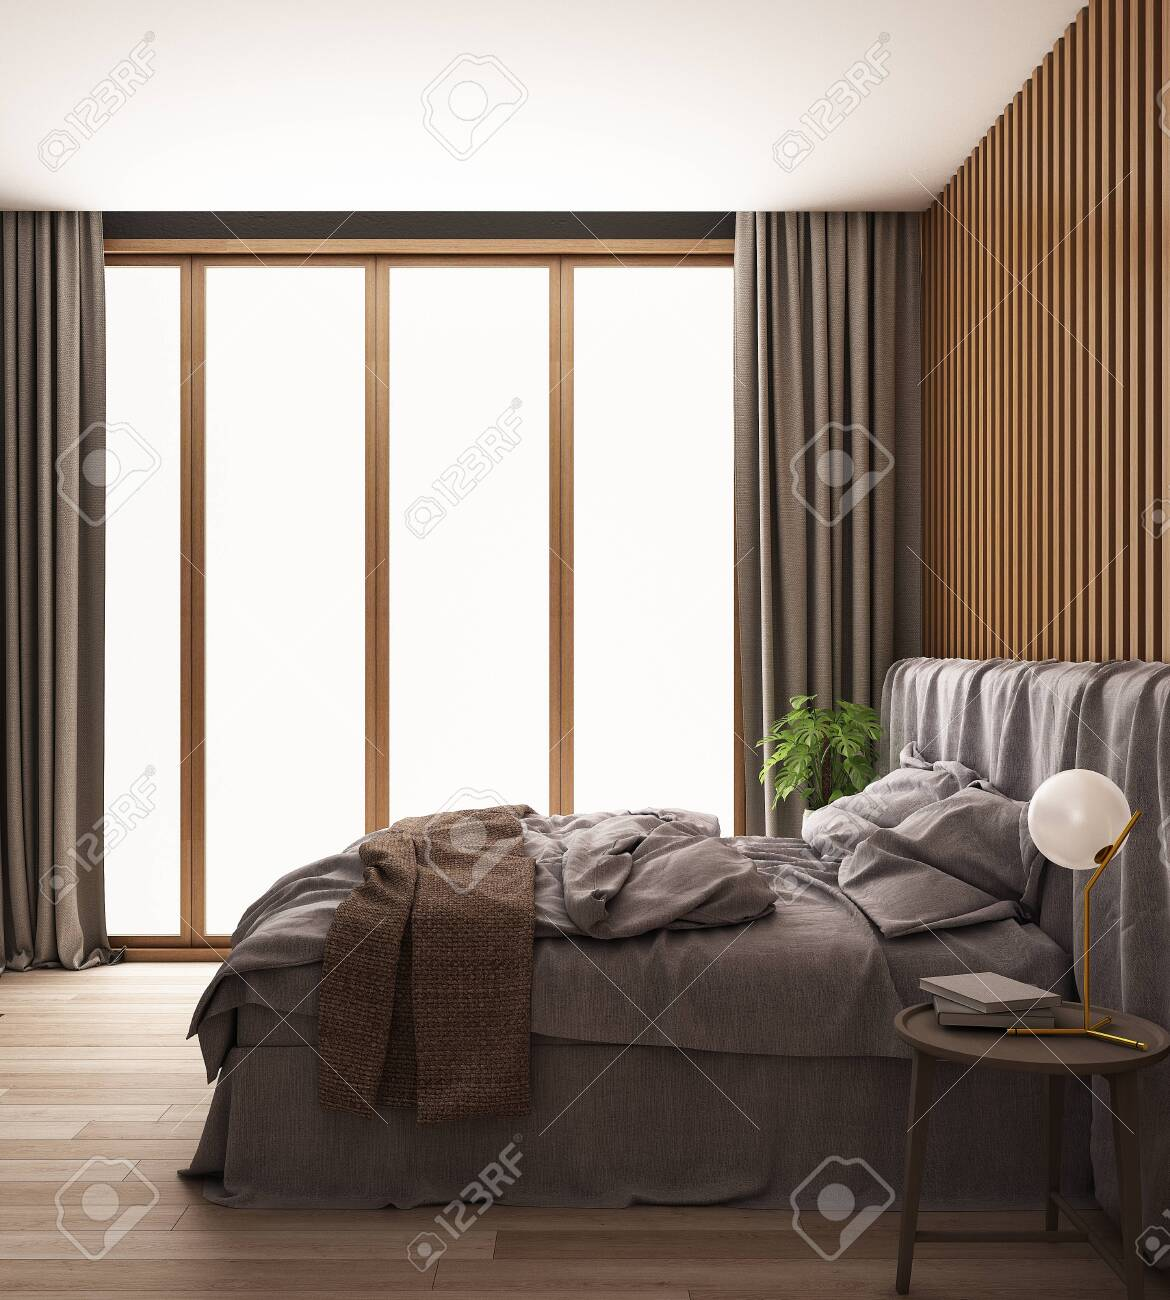 Interior Of Bedroom With Daylight Form Windows 3d Illustration Stock Photo Picture And Royalty Free Image Image 144894703